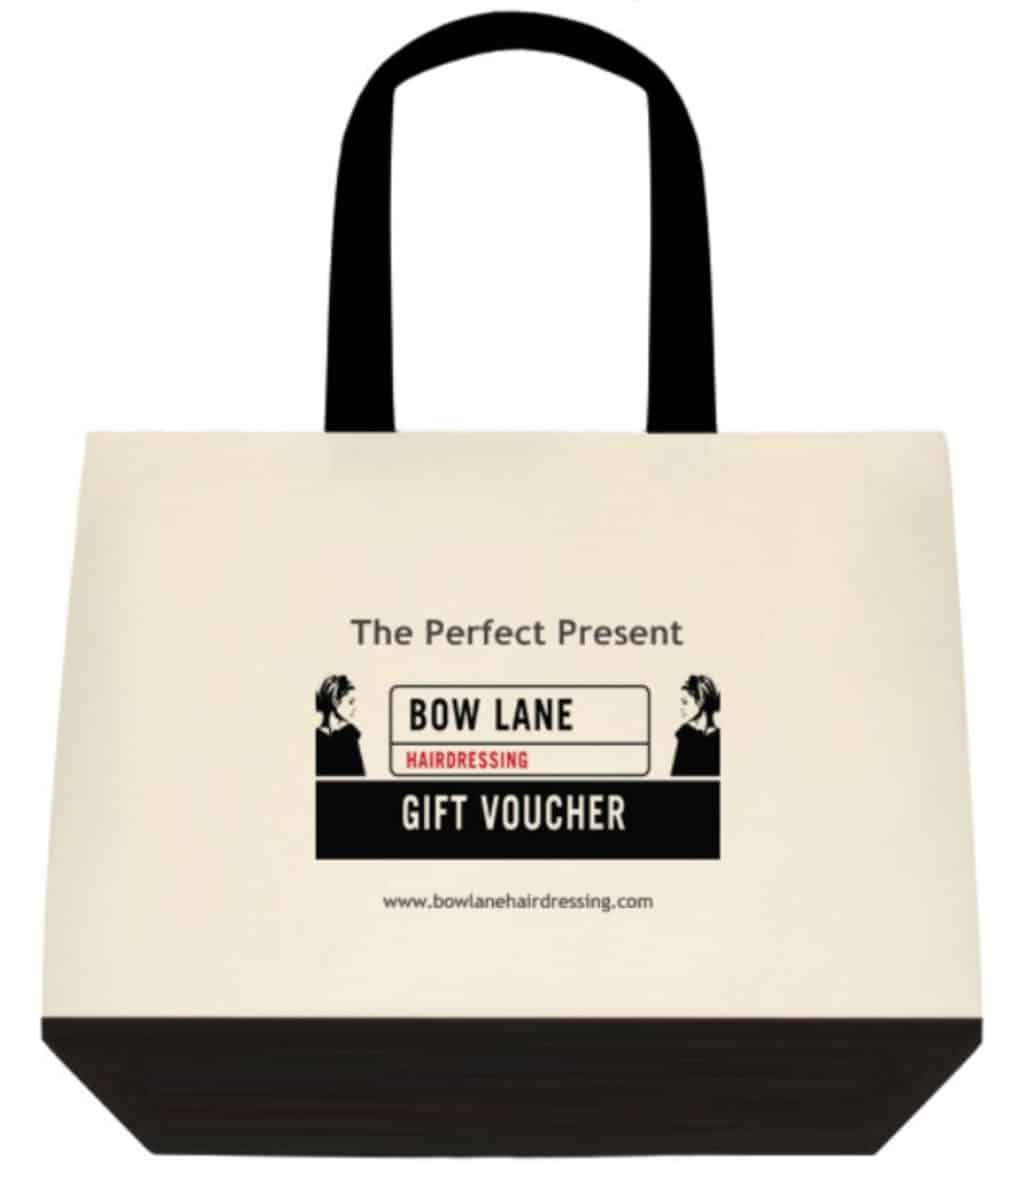 Bow Lane Hairdressing promotional bag